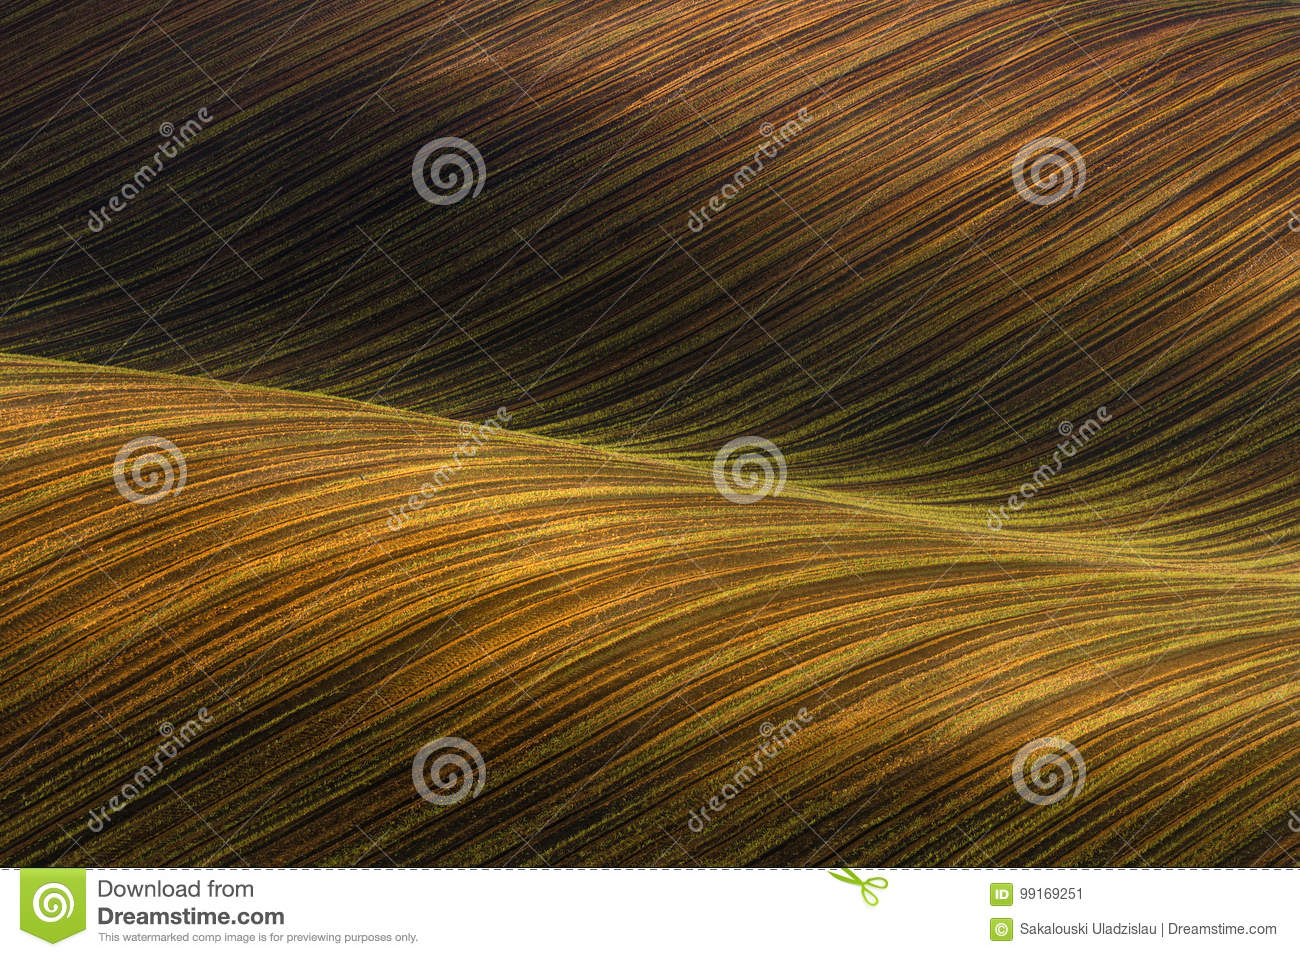 Waved Cultivated field with beautiful light-shadows chiaroscuro. Rustic autumn landscape in brown tones. Striped undulating abst